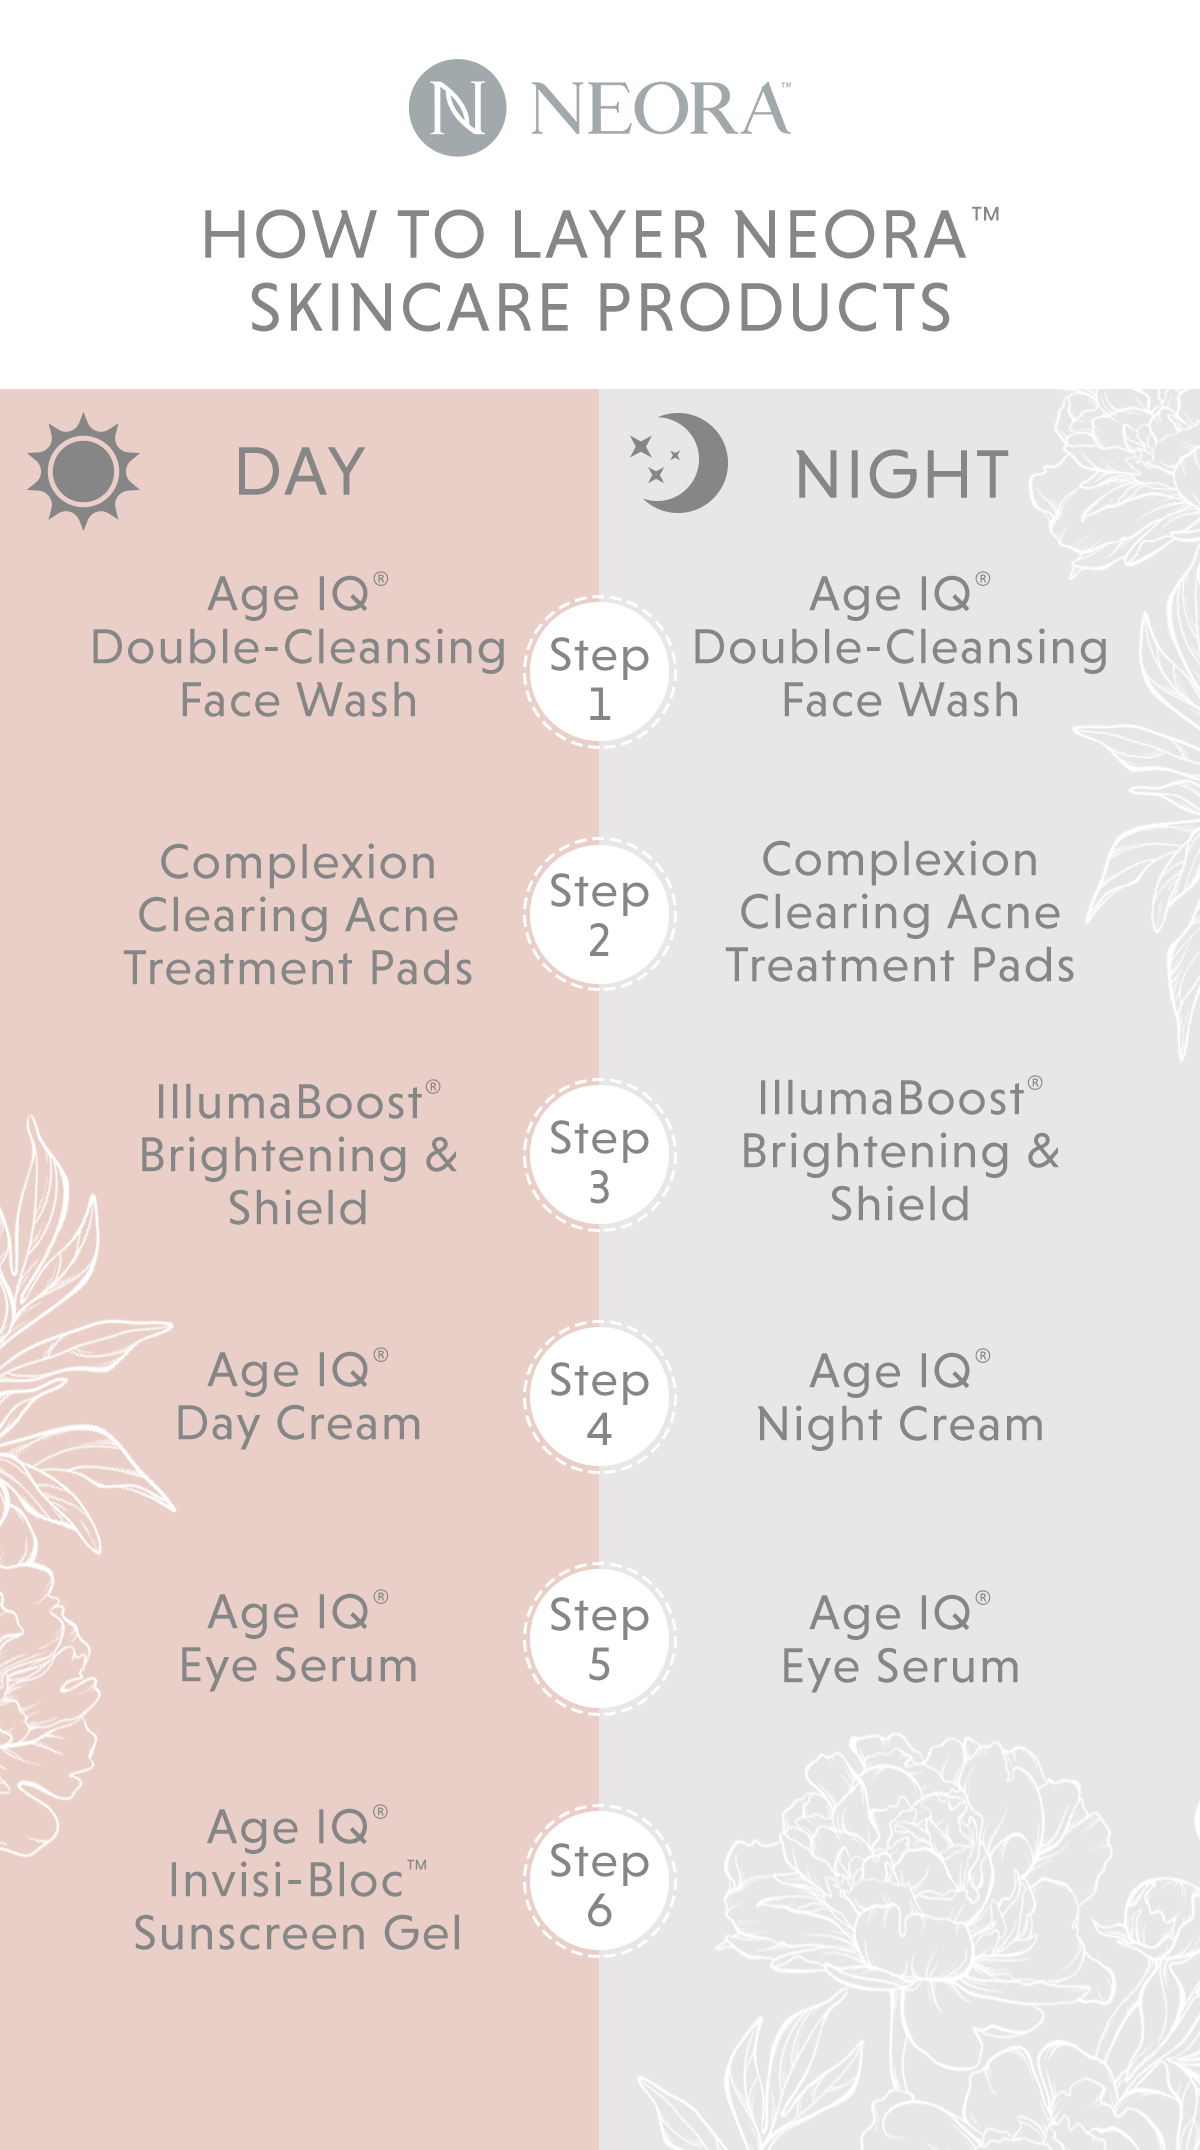 A side by side diagram-style guide comparing the 6 steps included in the Neora Daytime Skincare regimen.